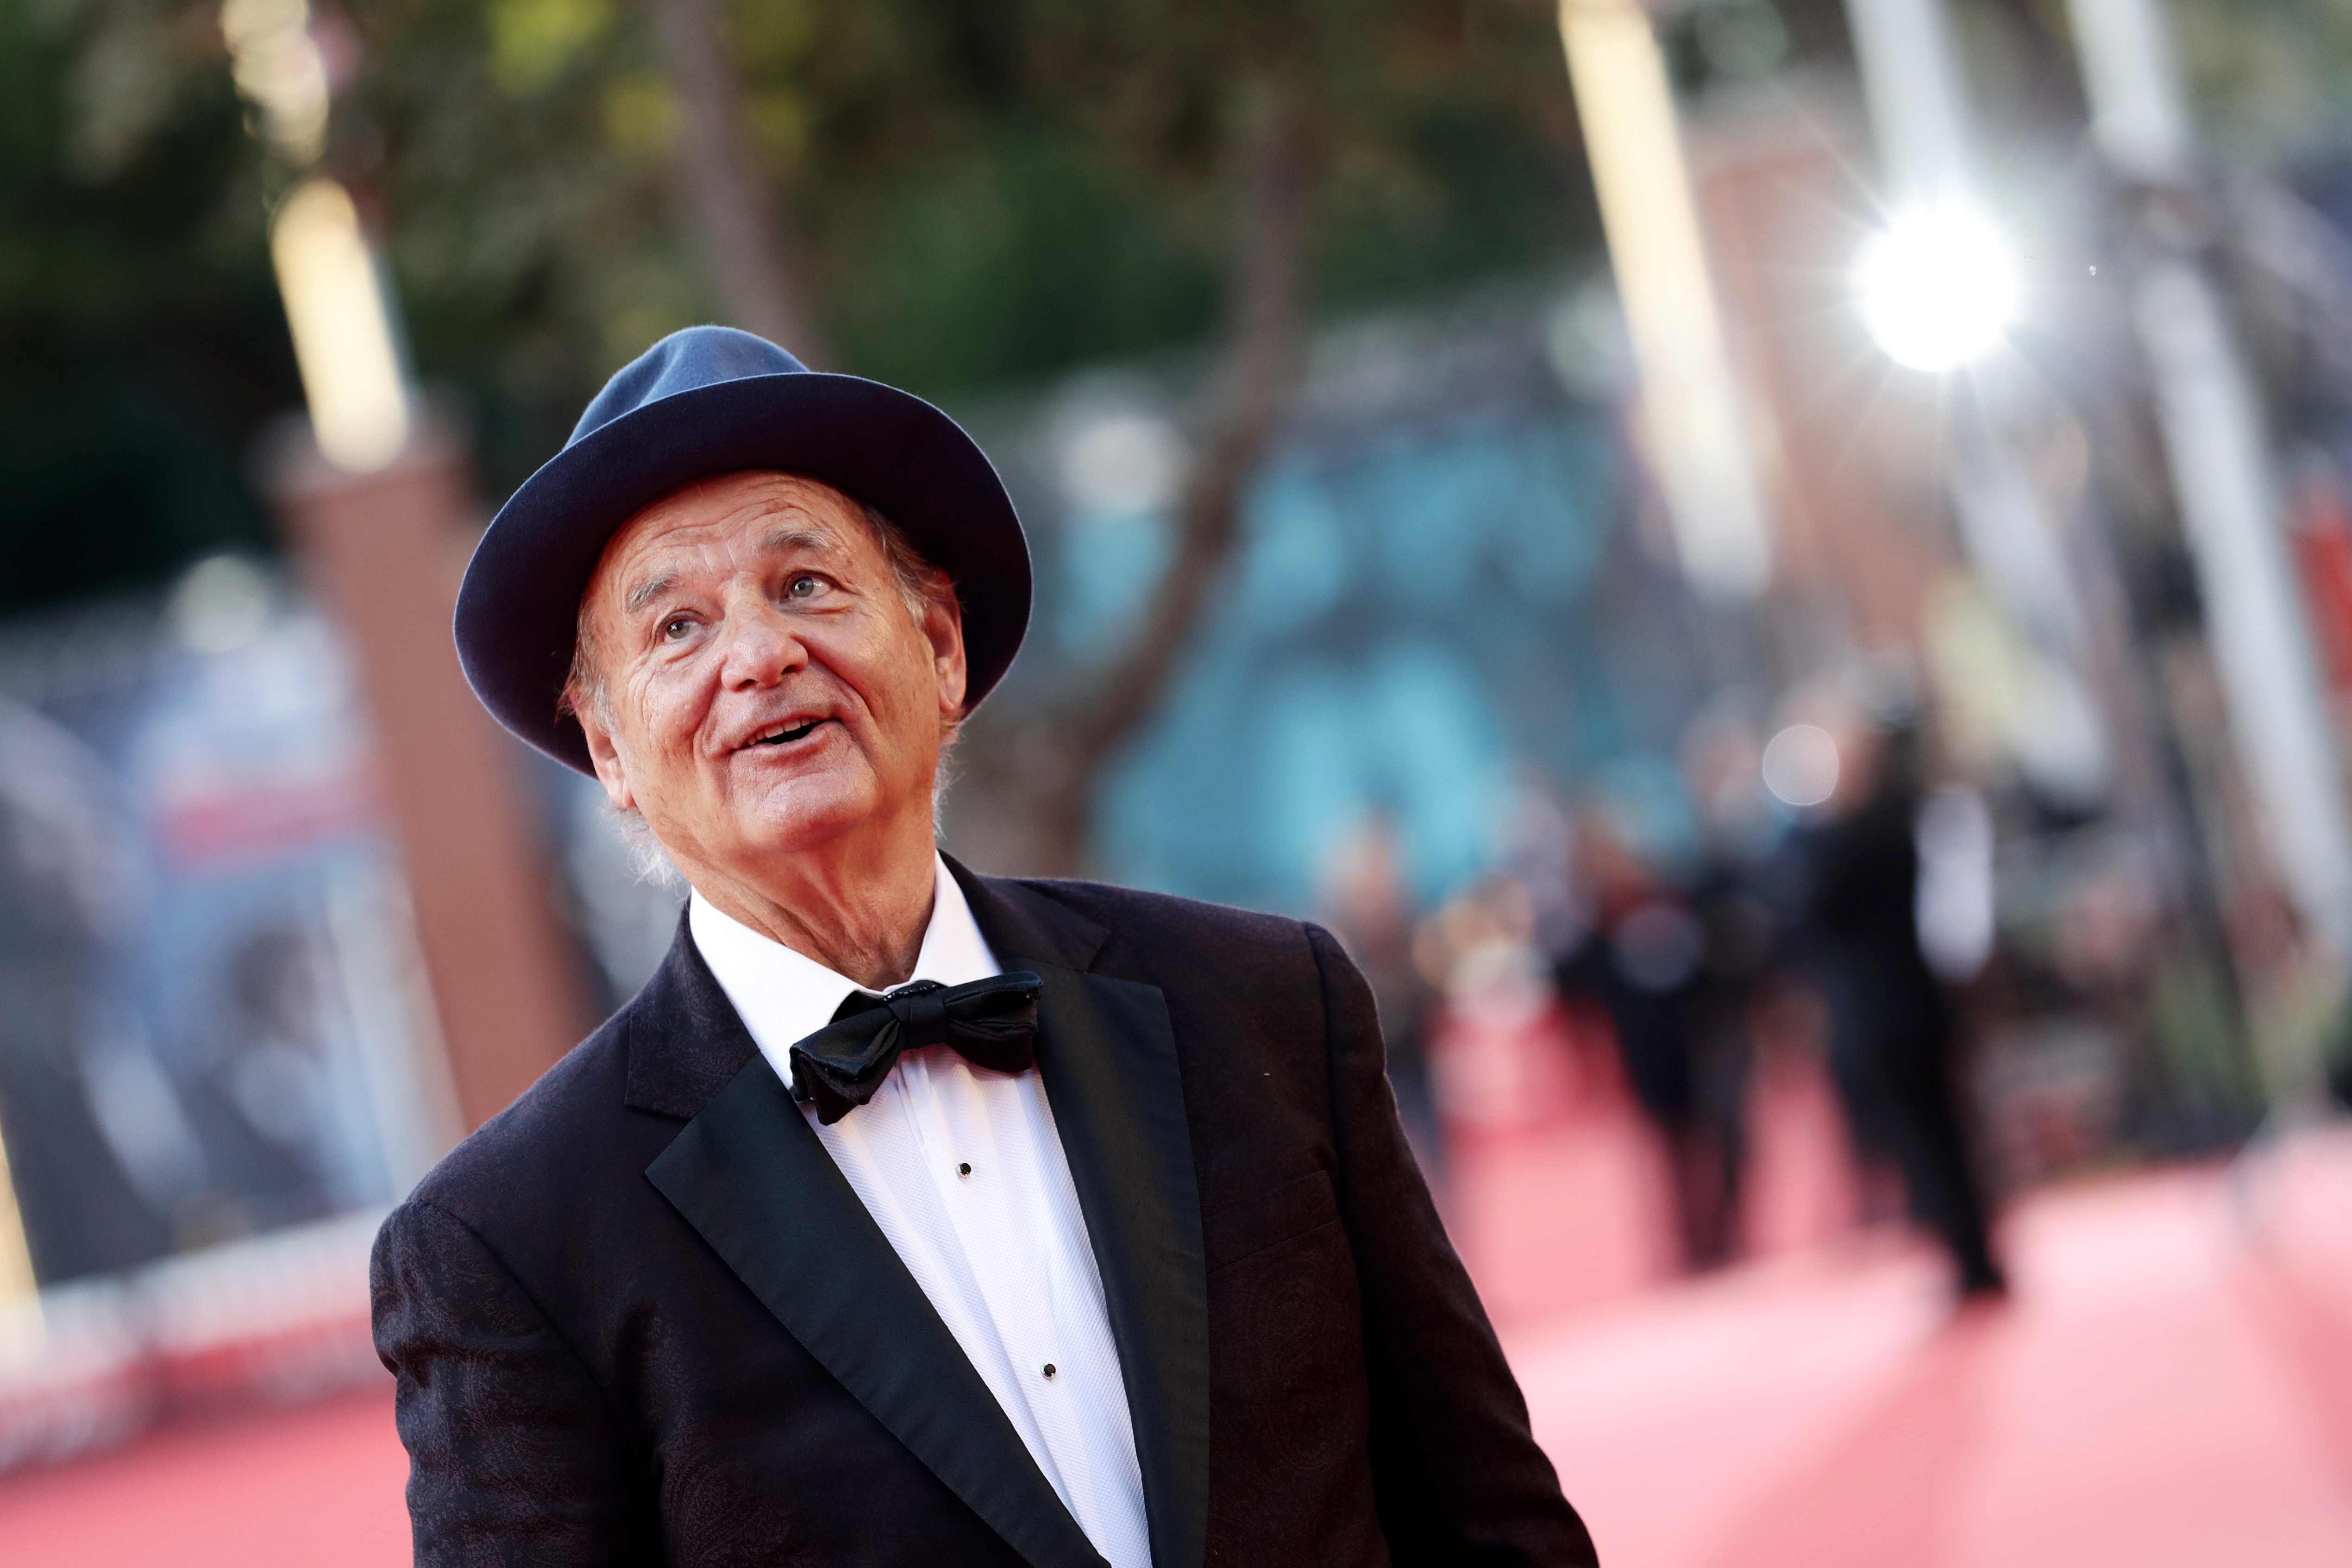 Bill Murray walks a red carpet during the 14th Rome Film Festival last week in Rome, Italy.